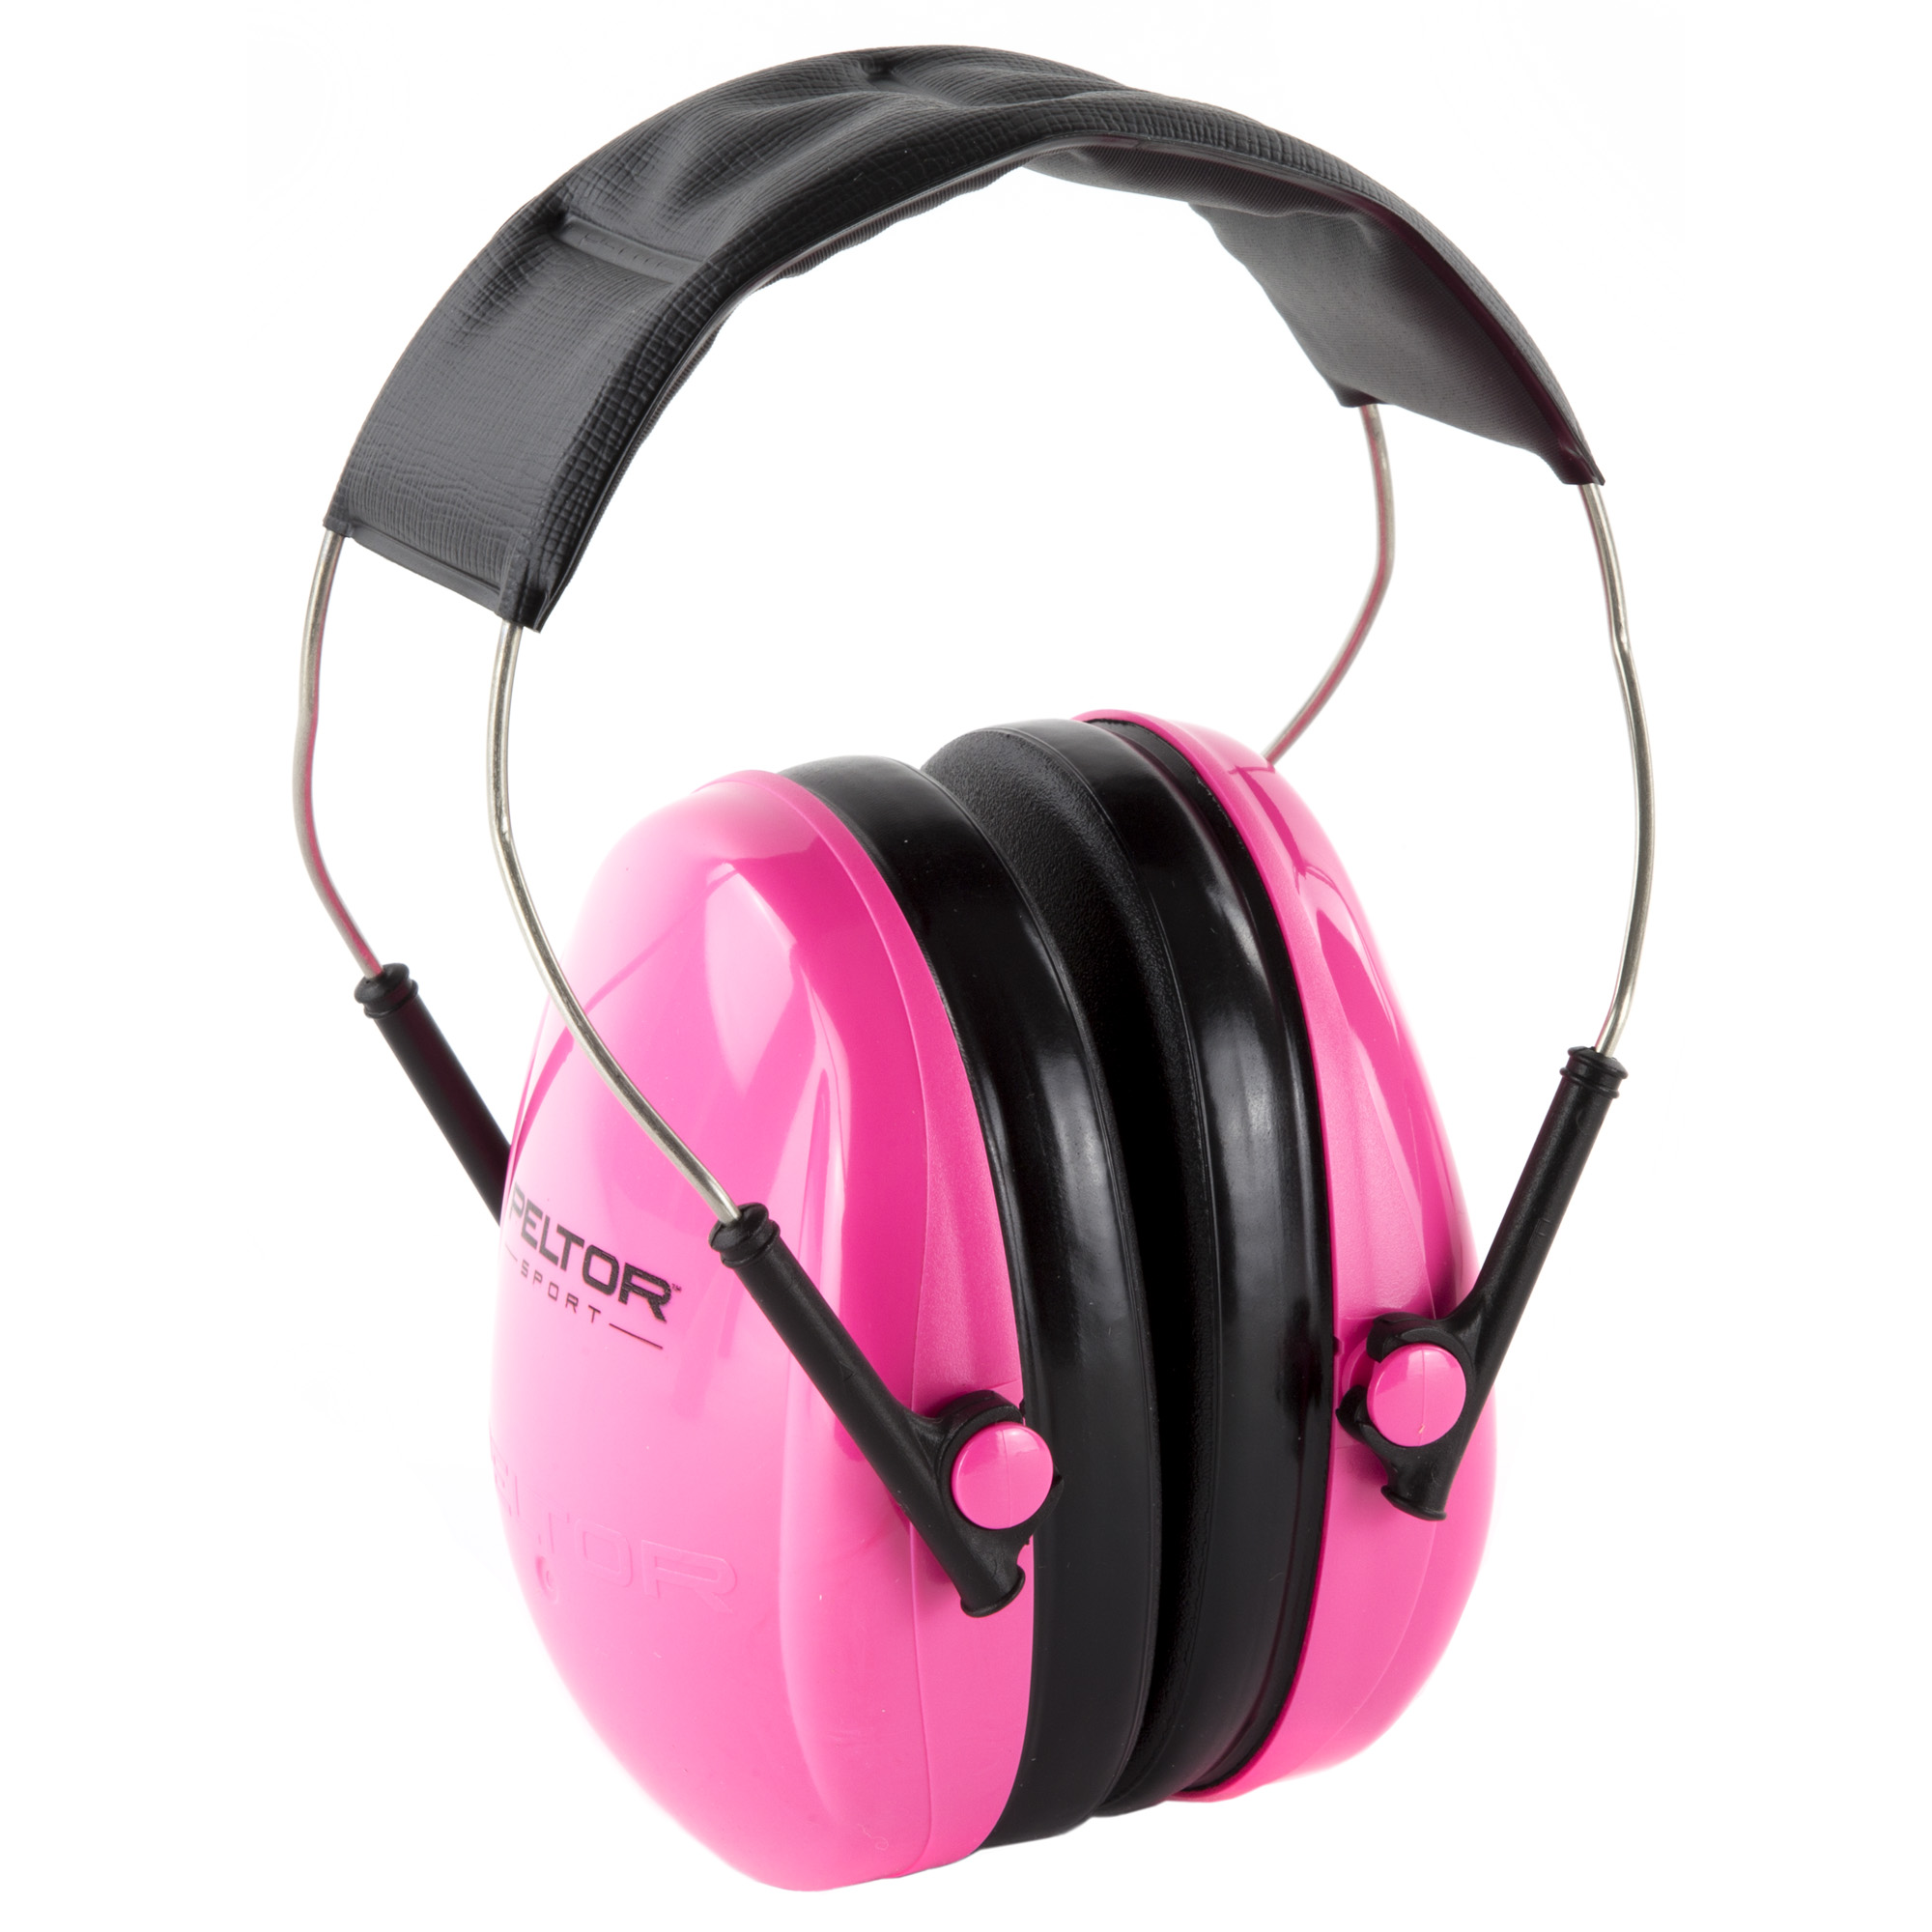 """The Peltor Junior earmuff adjusts to fit a wide variety of sizes"""" from children through small adults. The low profile ear cups are comfortable over extended periods of wear. The padded"""" adjustable headband provides comfort and a custom fit."""